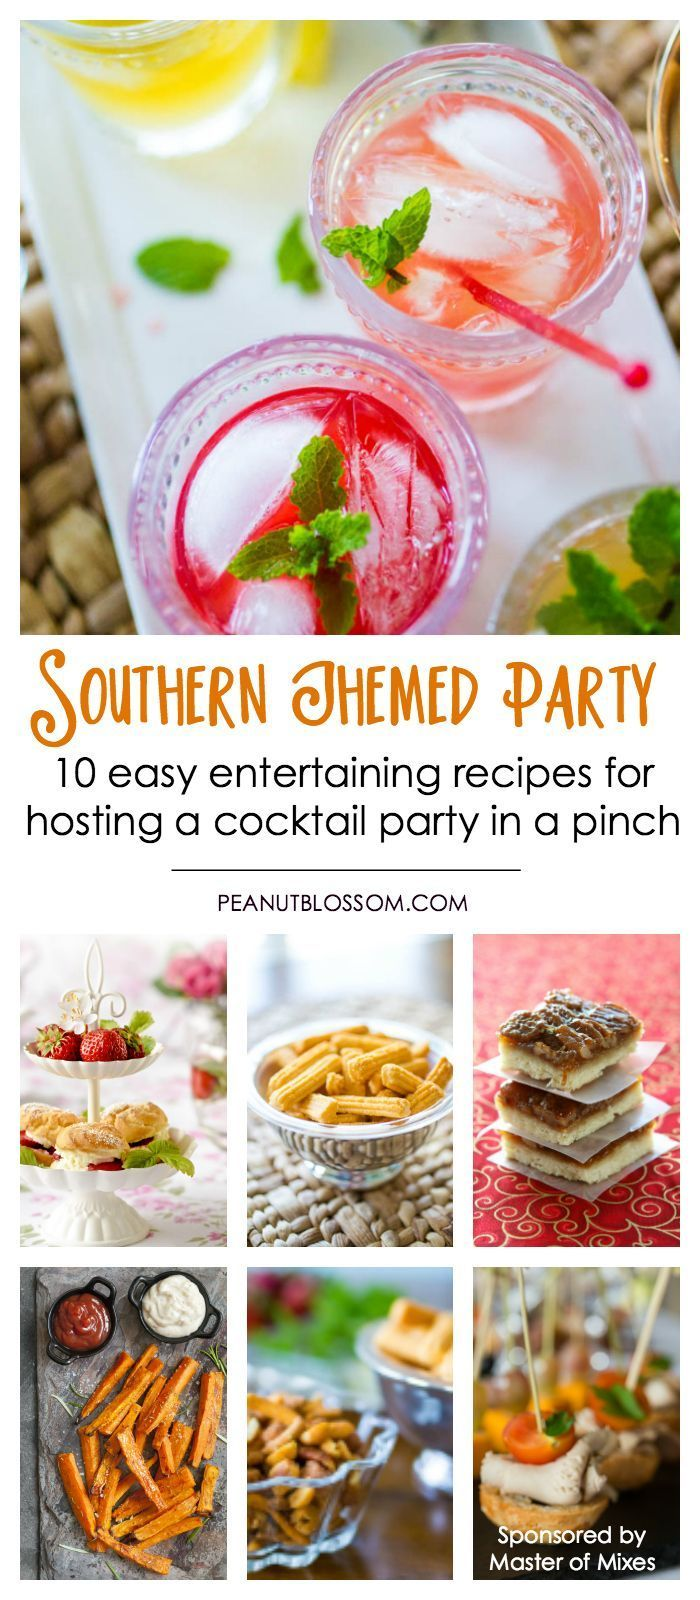 10 easy party recipes for hosting a Southern themed party with your friends. Perfect for the Kentucky Derby or a lovely southern cocktail party. Love the 4 mint julep variations and easy appetizer ideas.